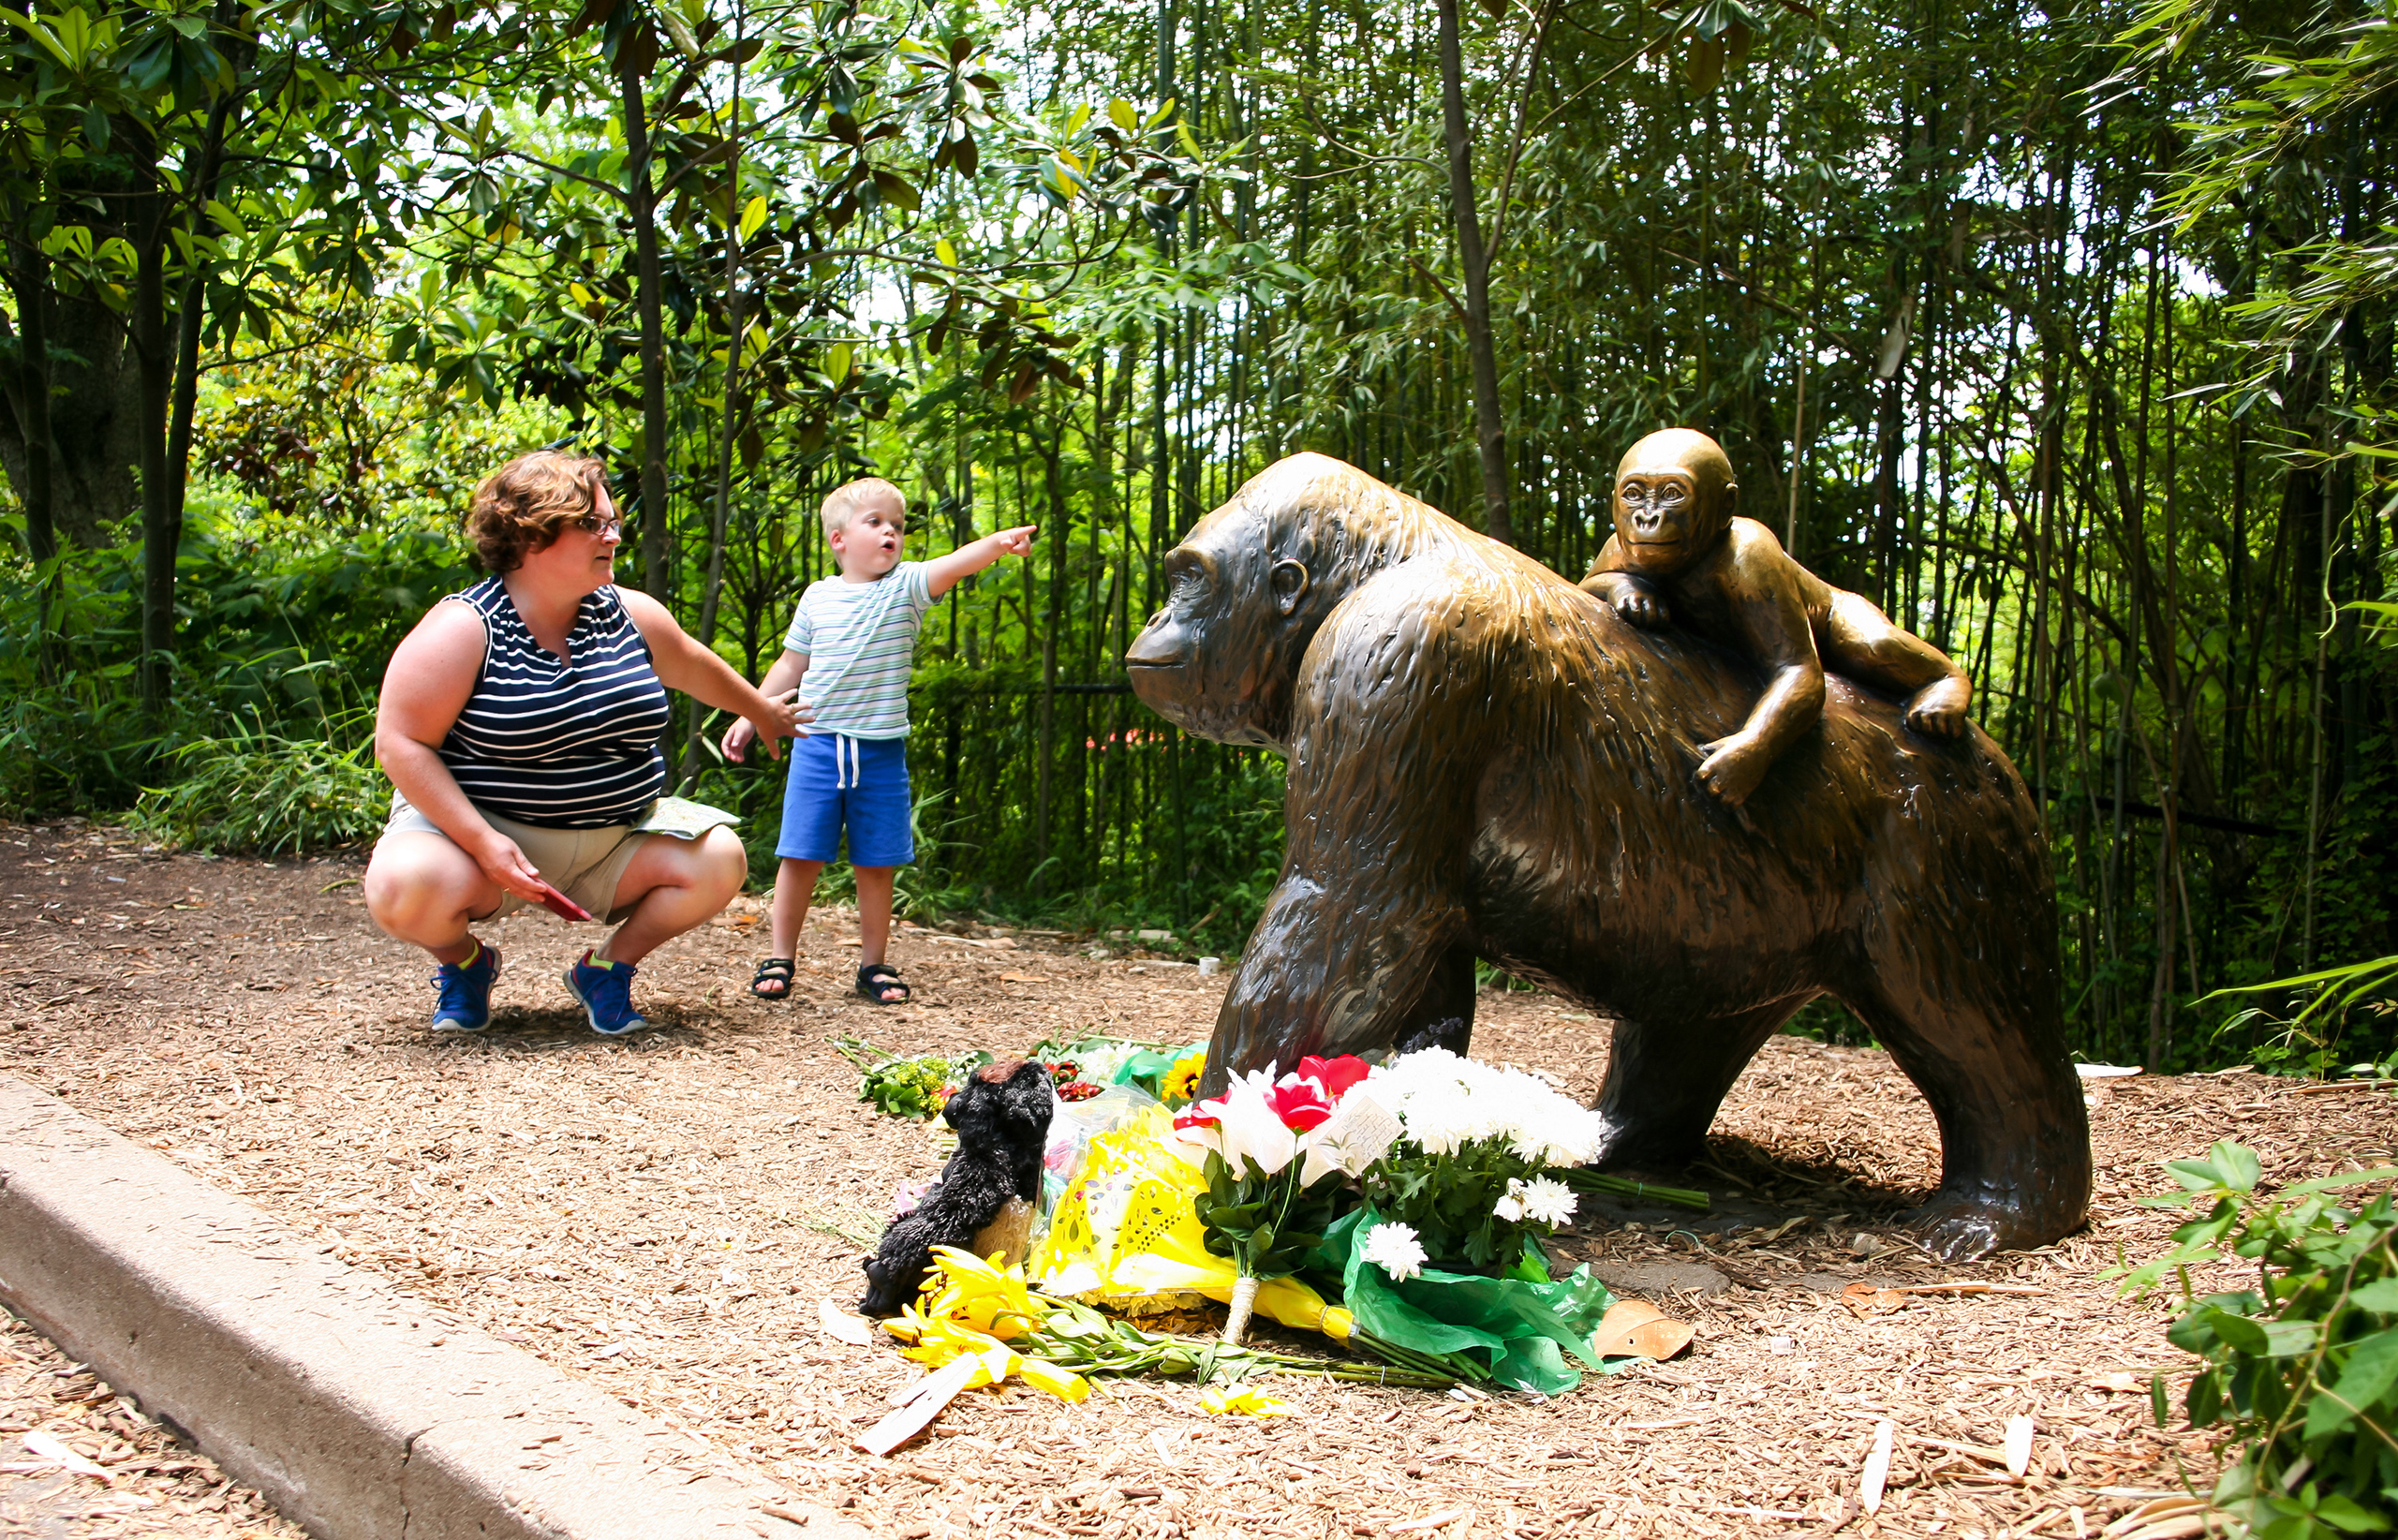 A mother and her child visit a bronze statue of a gorilla outside the Cincinnati Zoo's Gorilla World exhibit, two days after officials were forced to kill Harambe, a Western lowland gorilla, in Cincinnati, May 30, 2016.